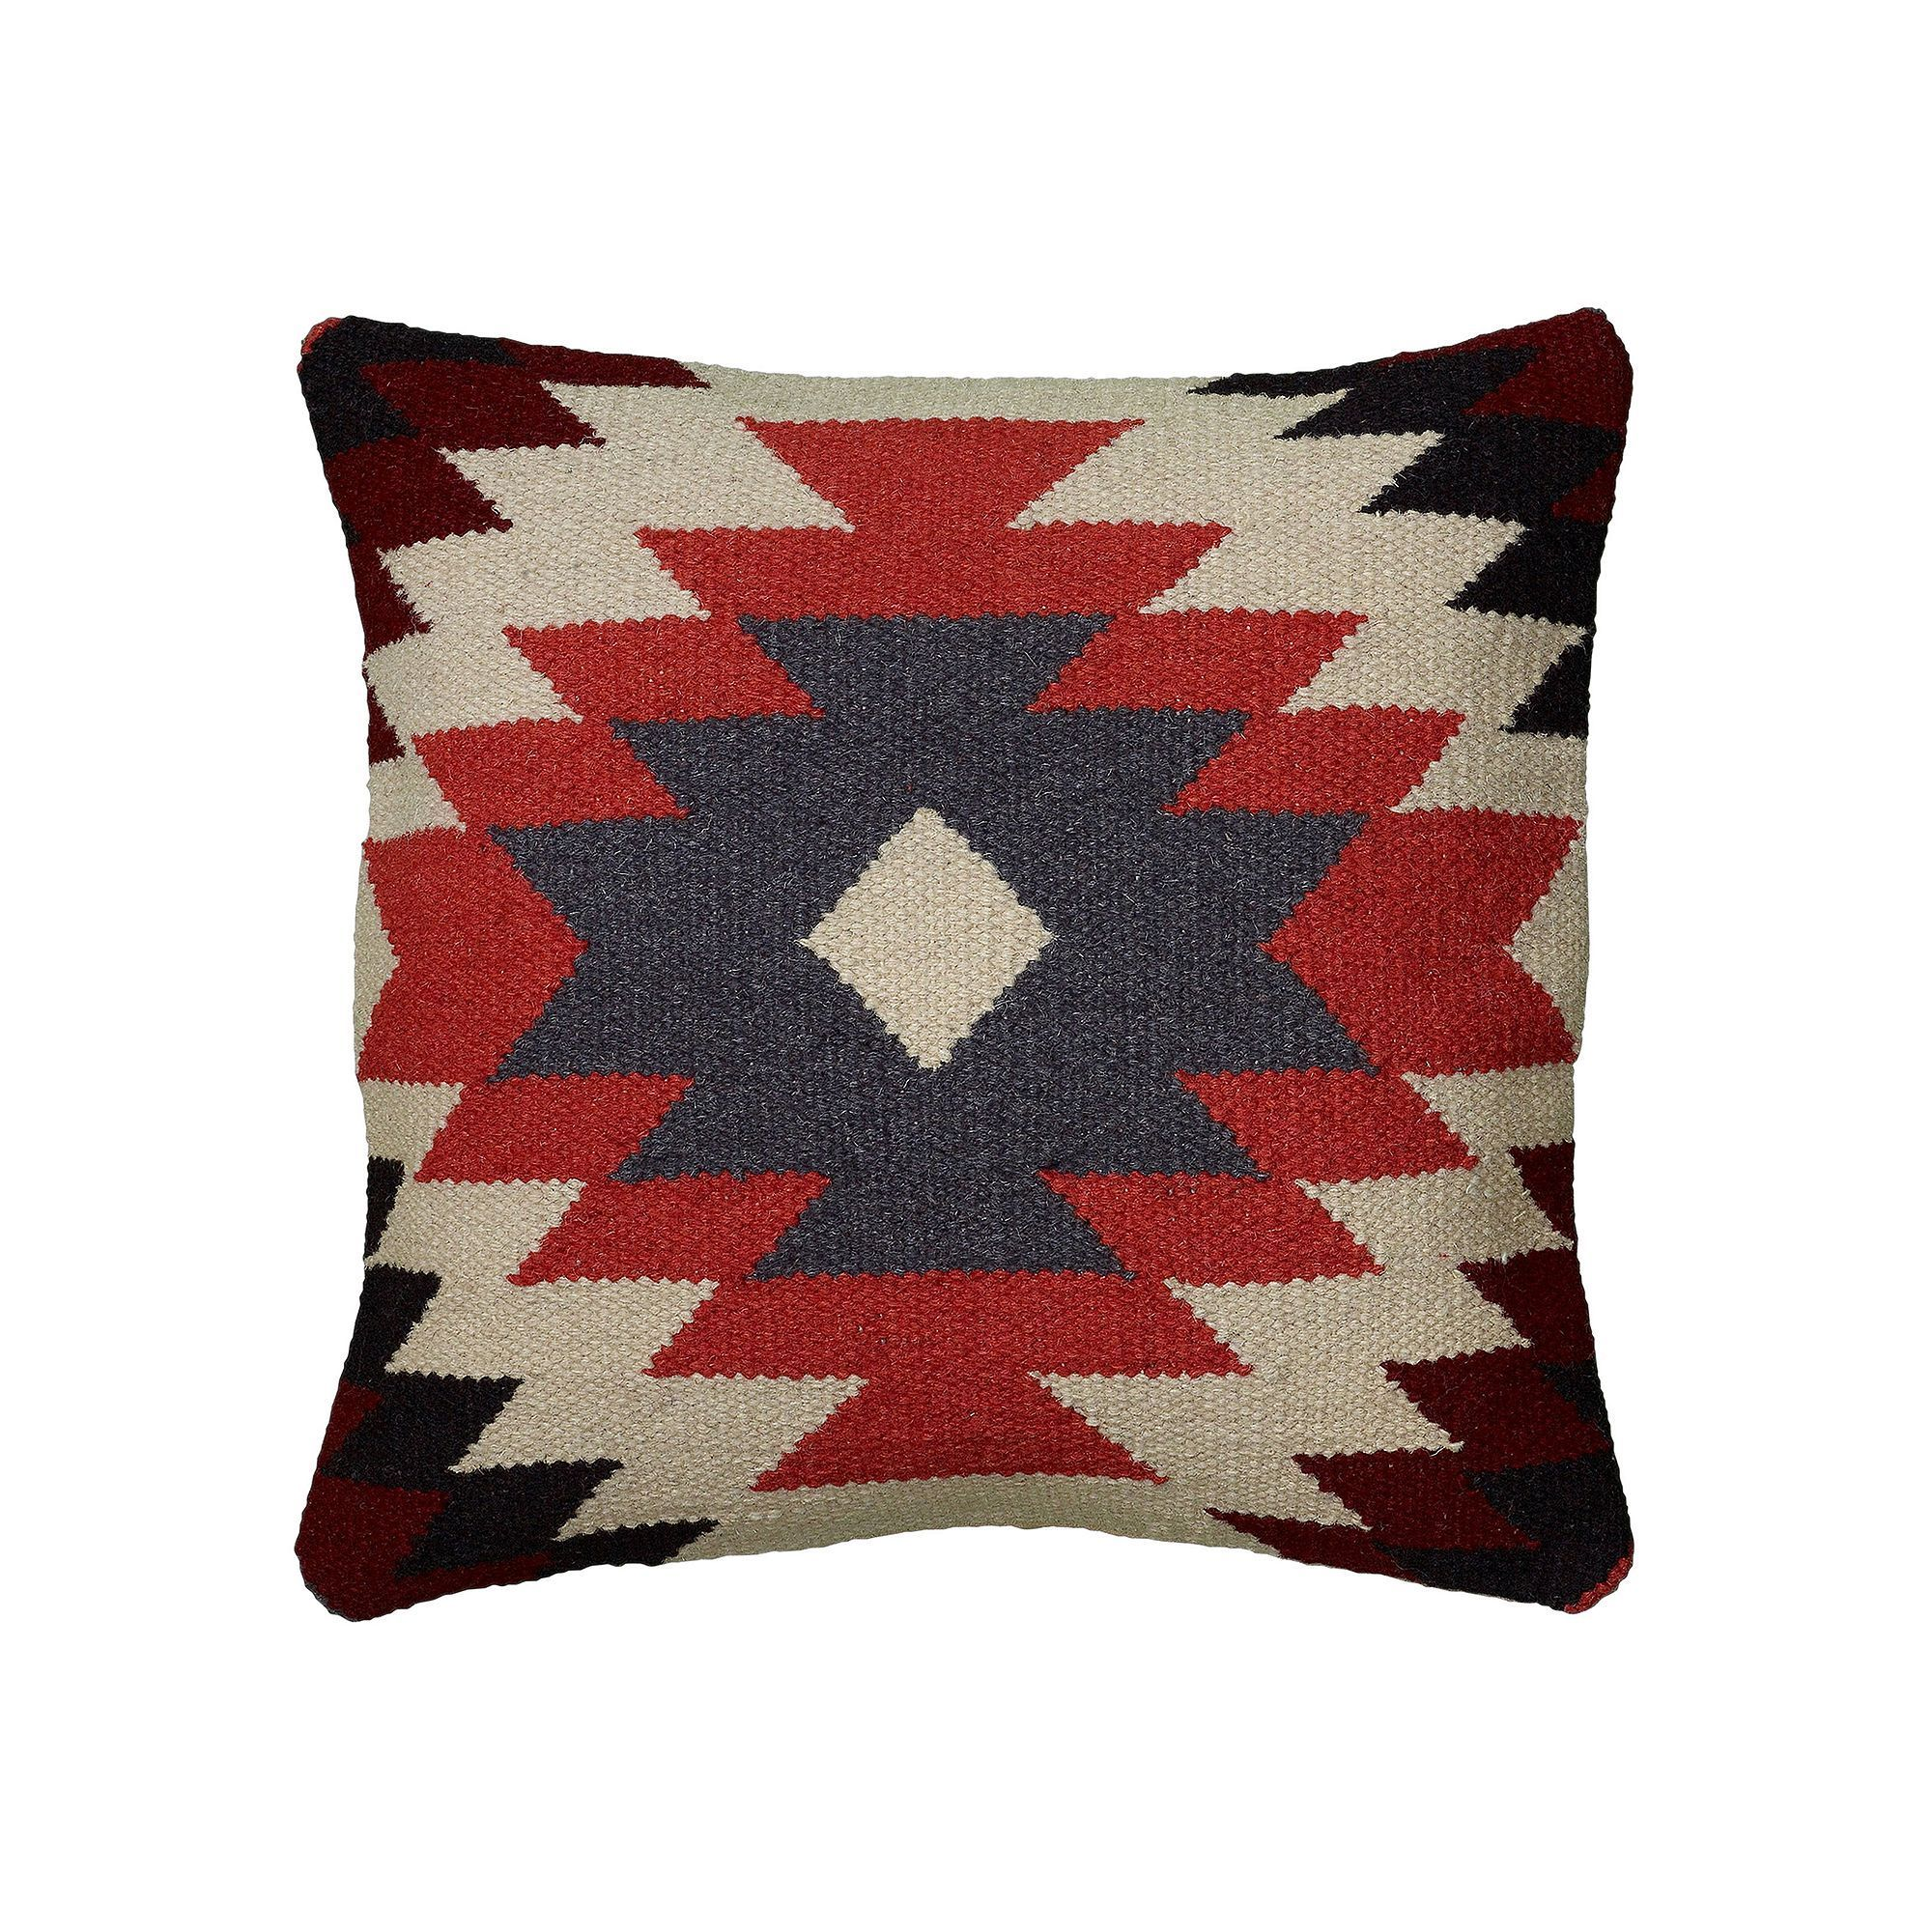 Rizzy home colorful southwestern throw pillow orange